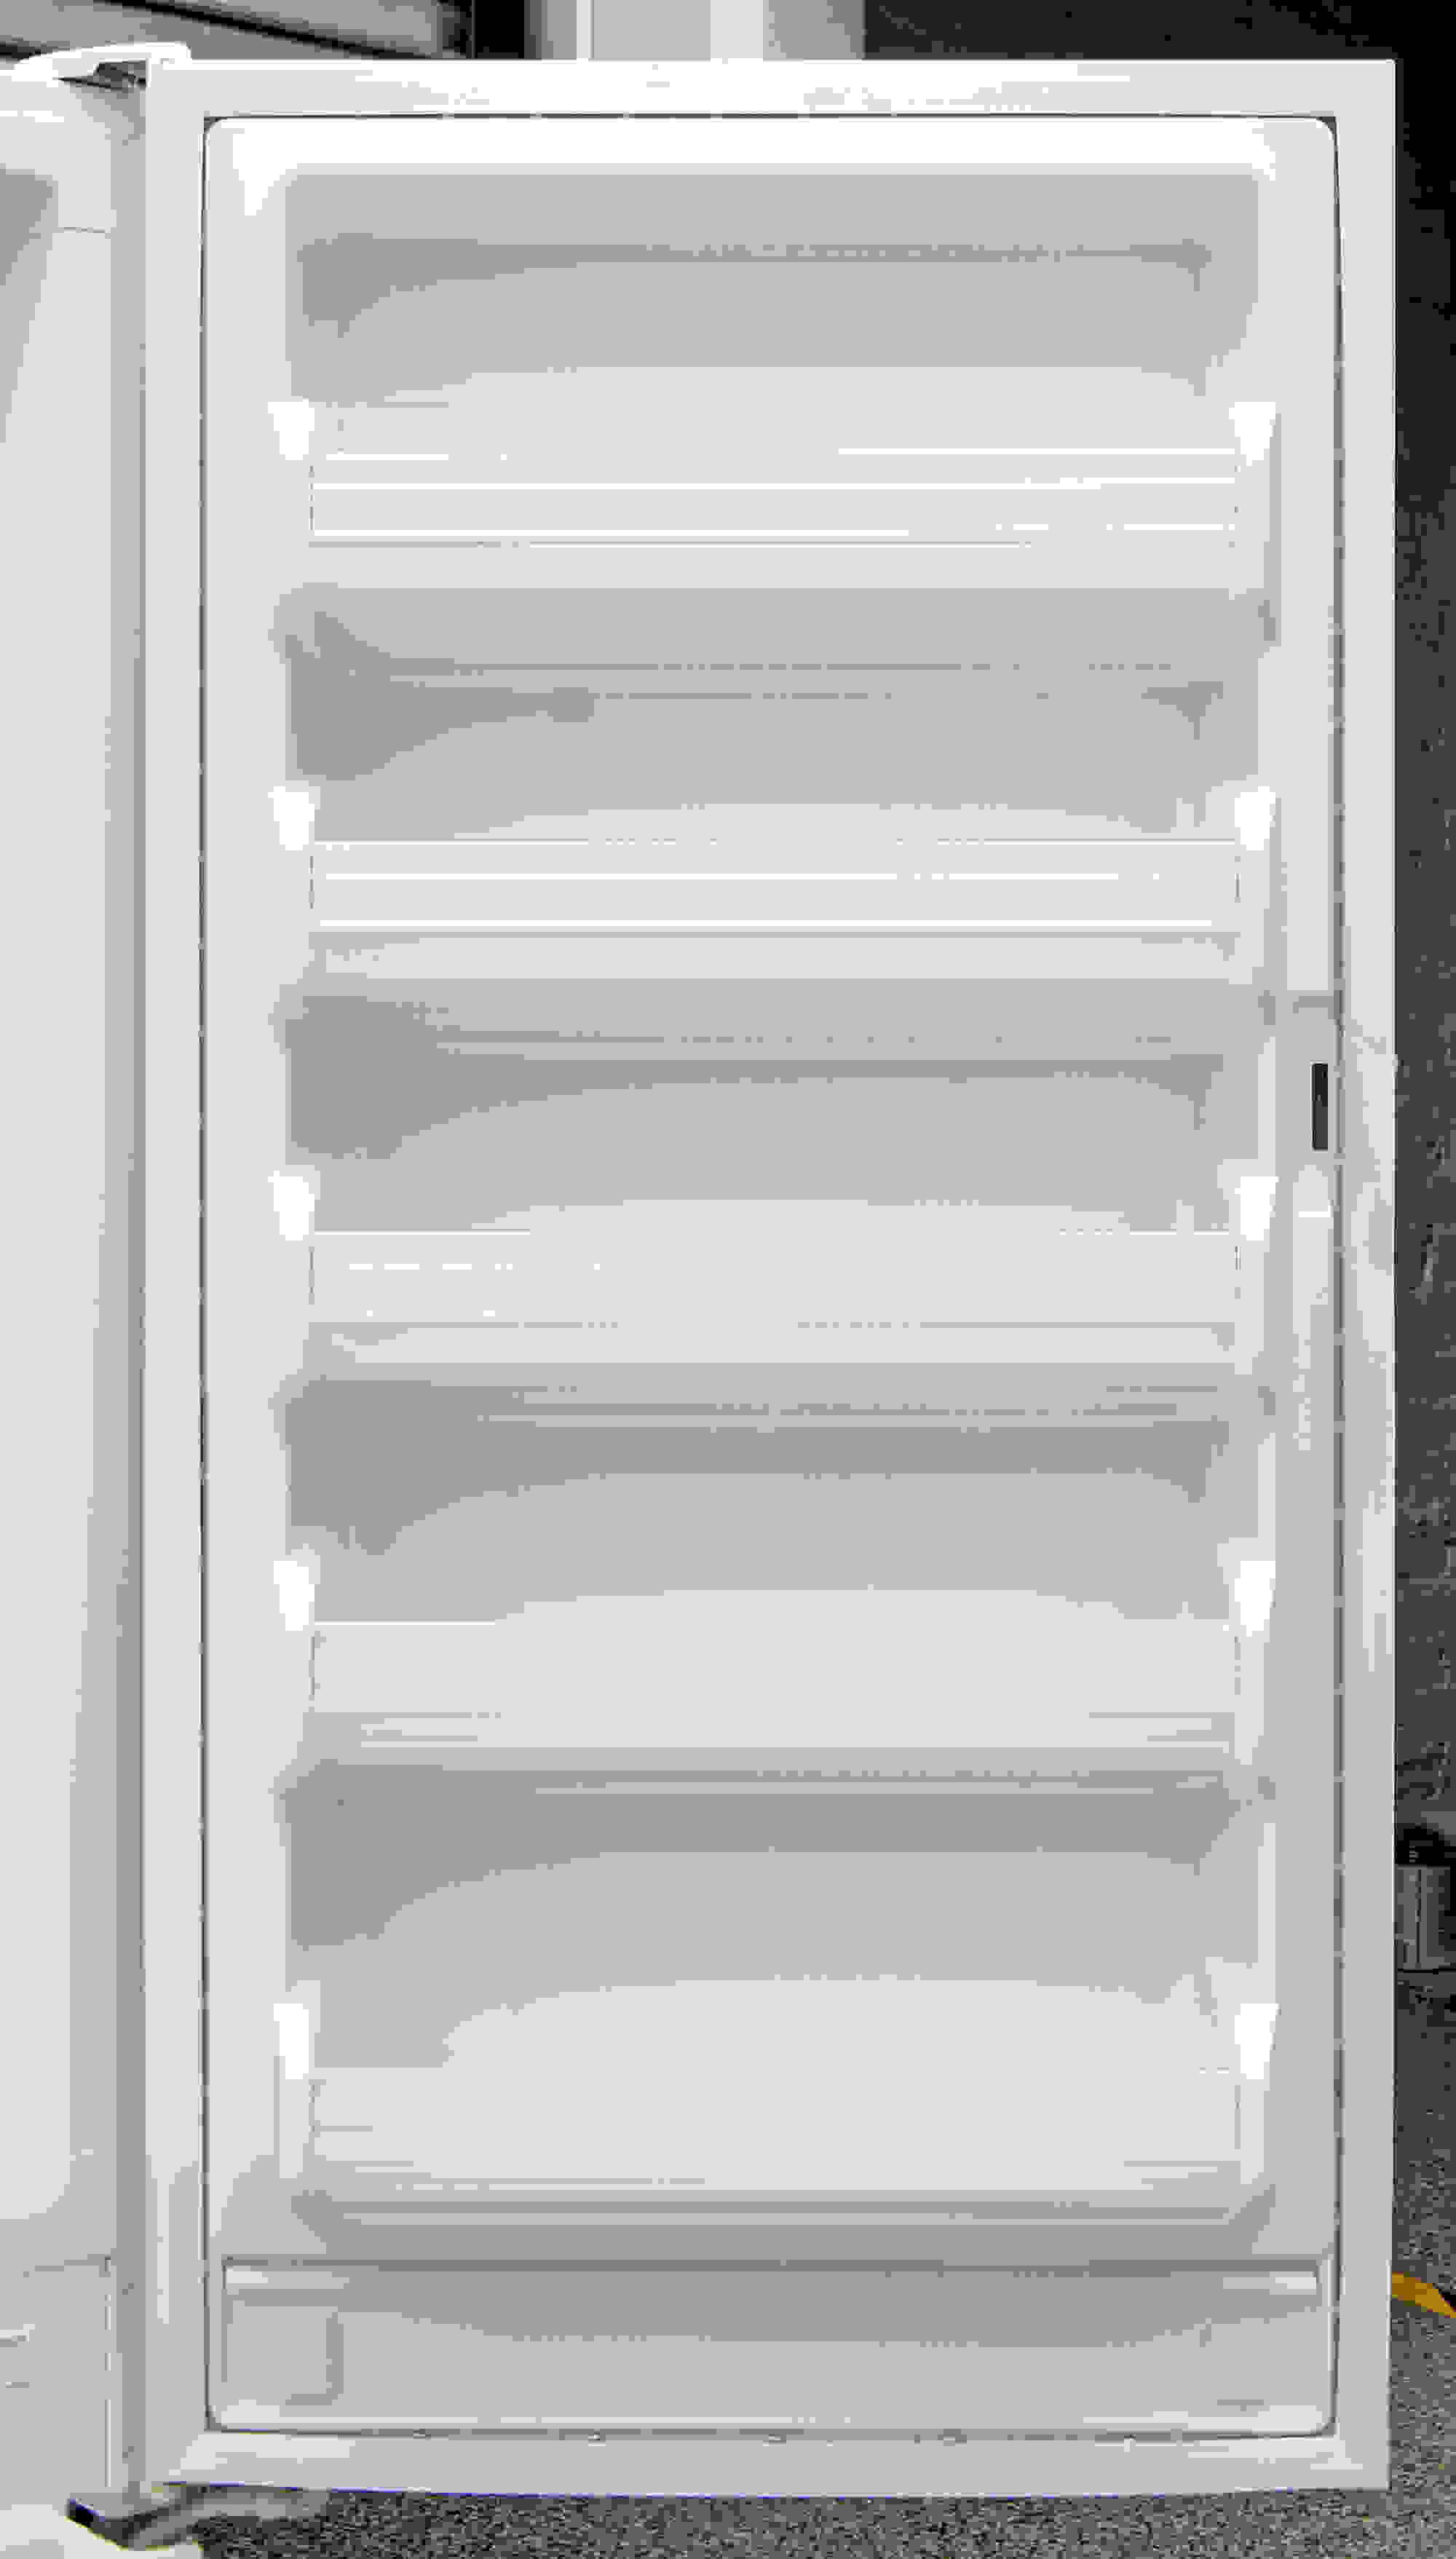 The Kenmore 28432 gives you five door shelves for supplemental storage, none of which are movable.